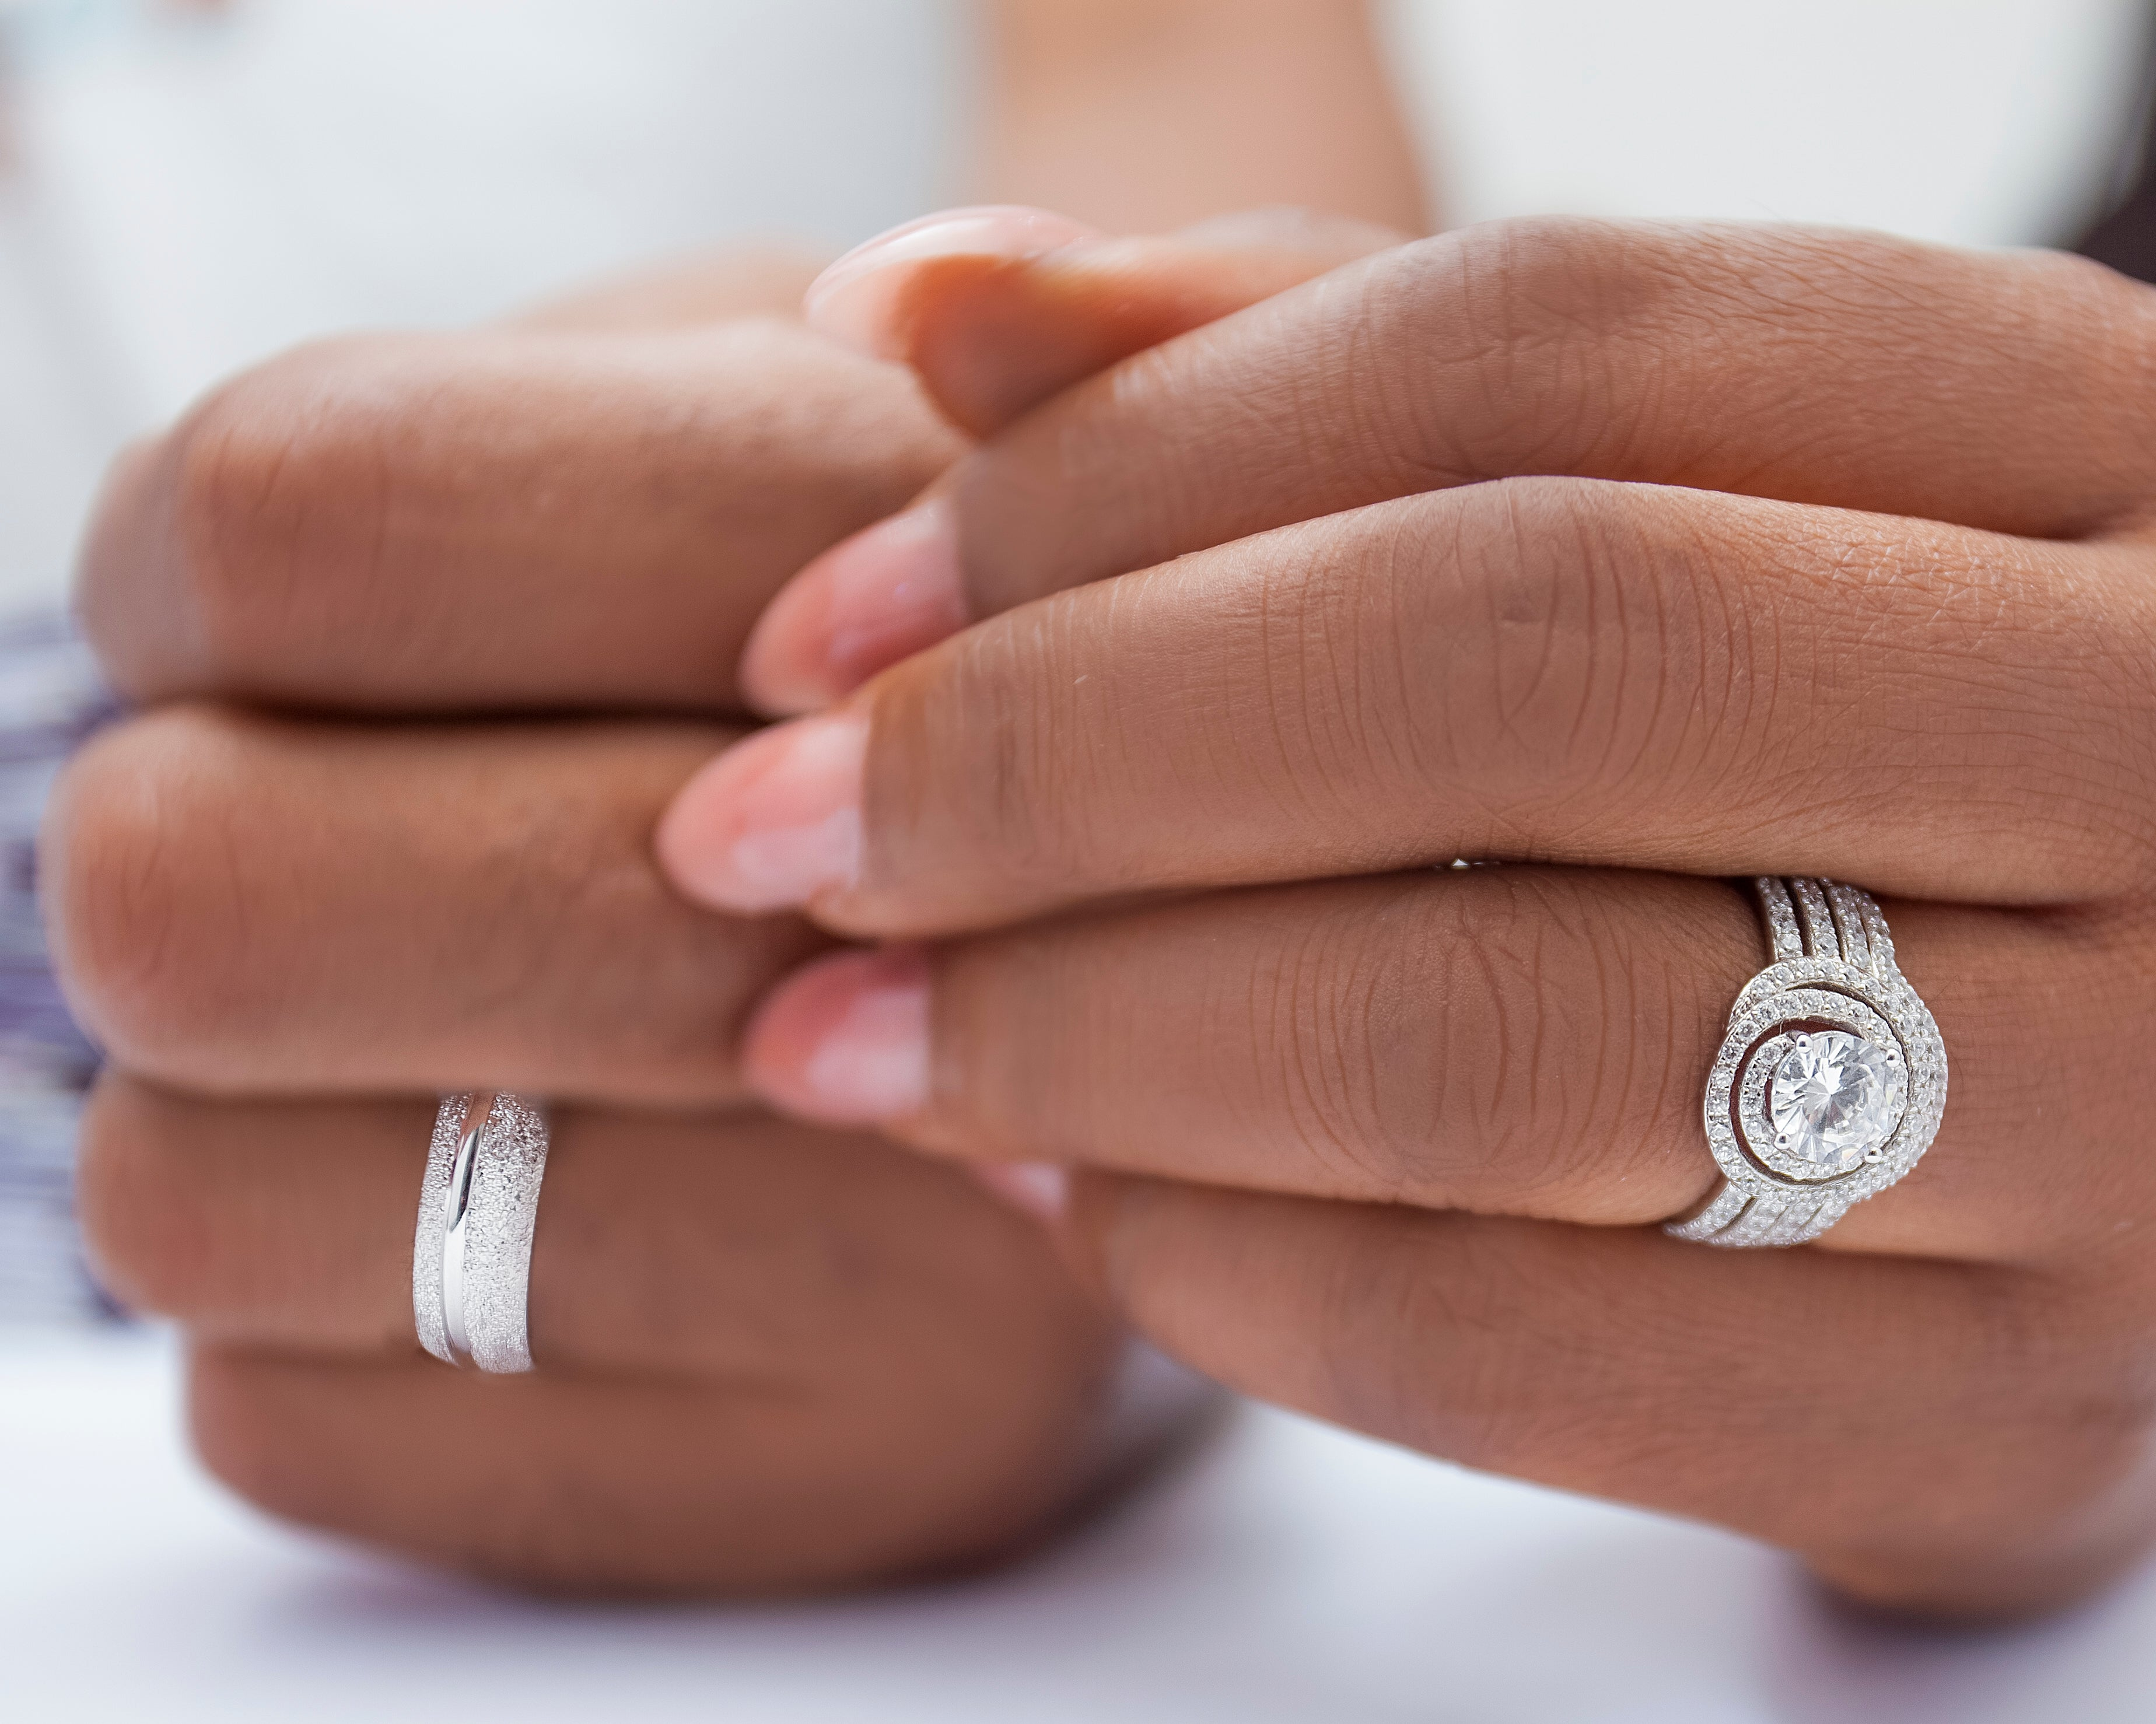 What is symbolic about the marriage finger